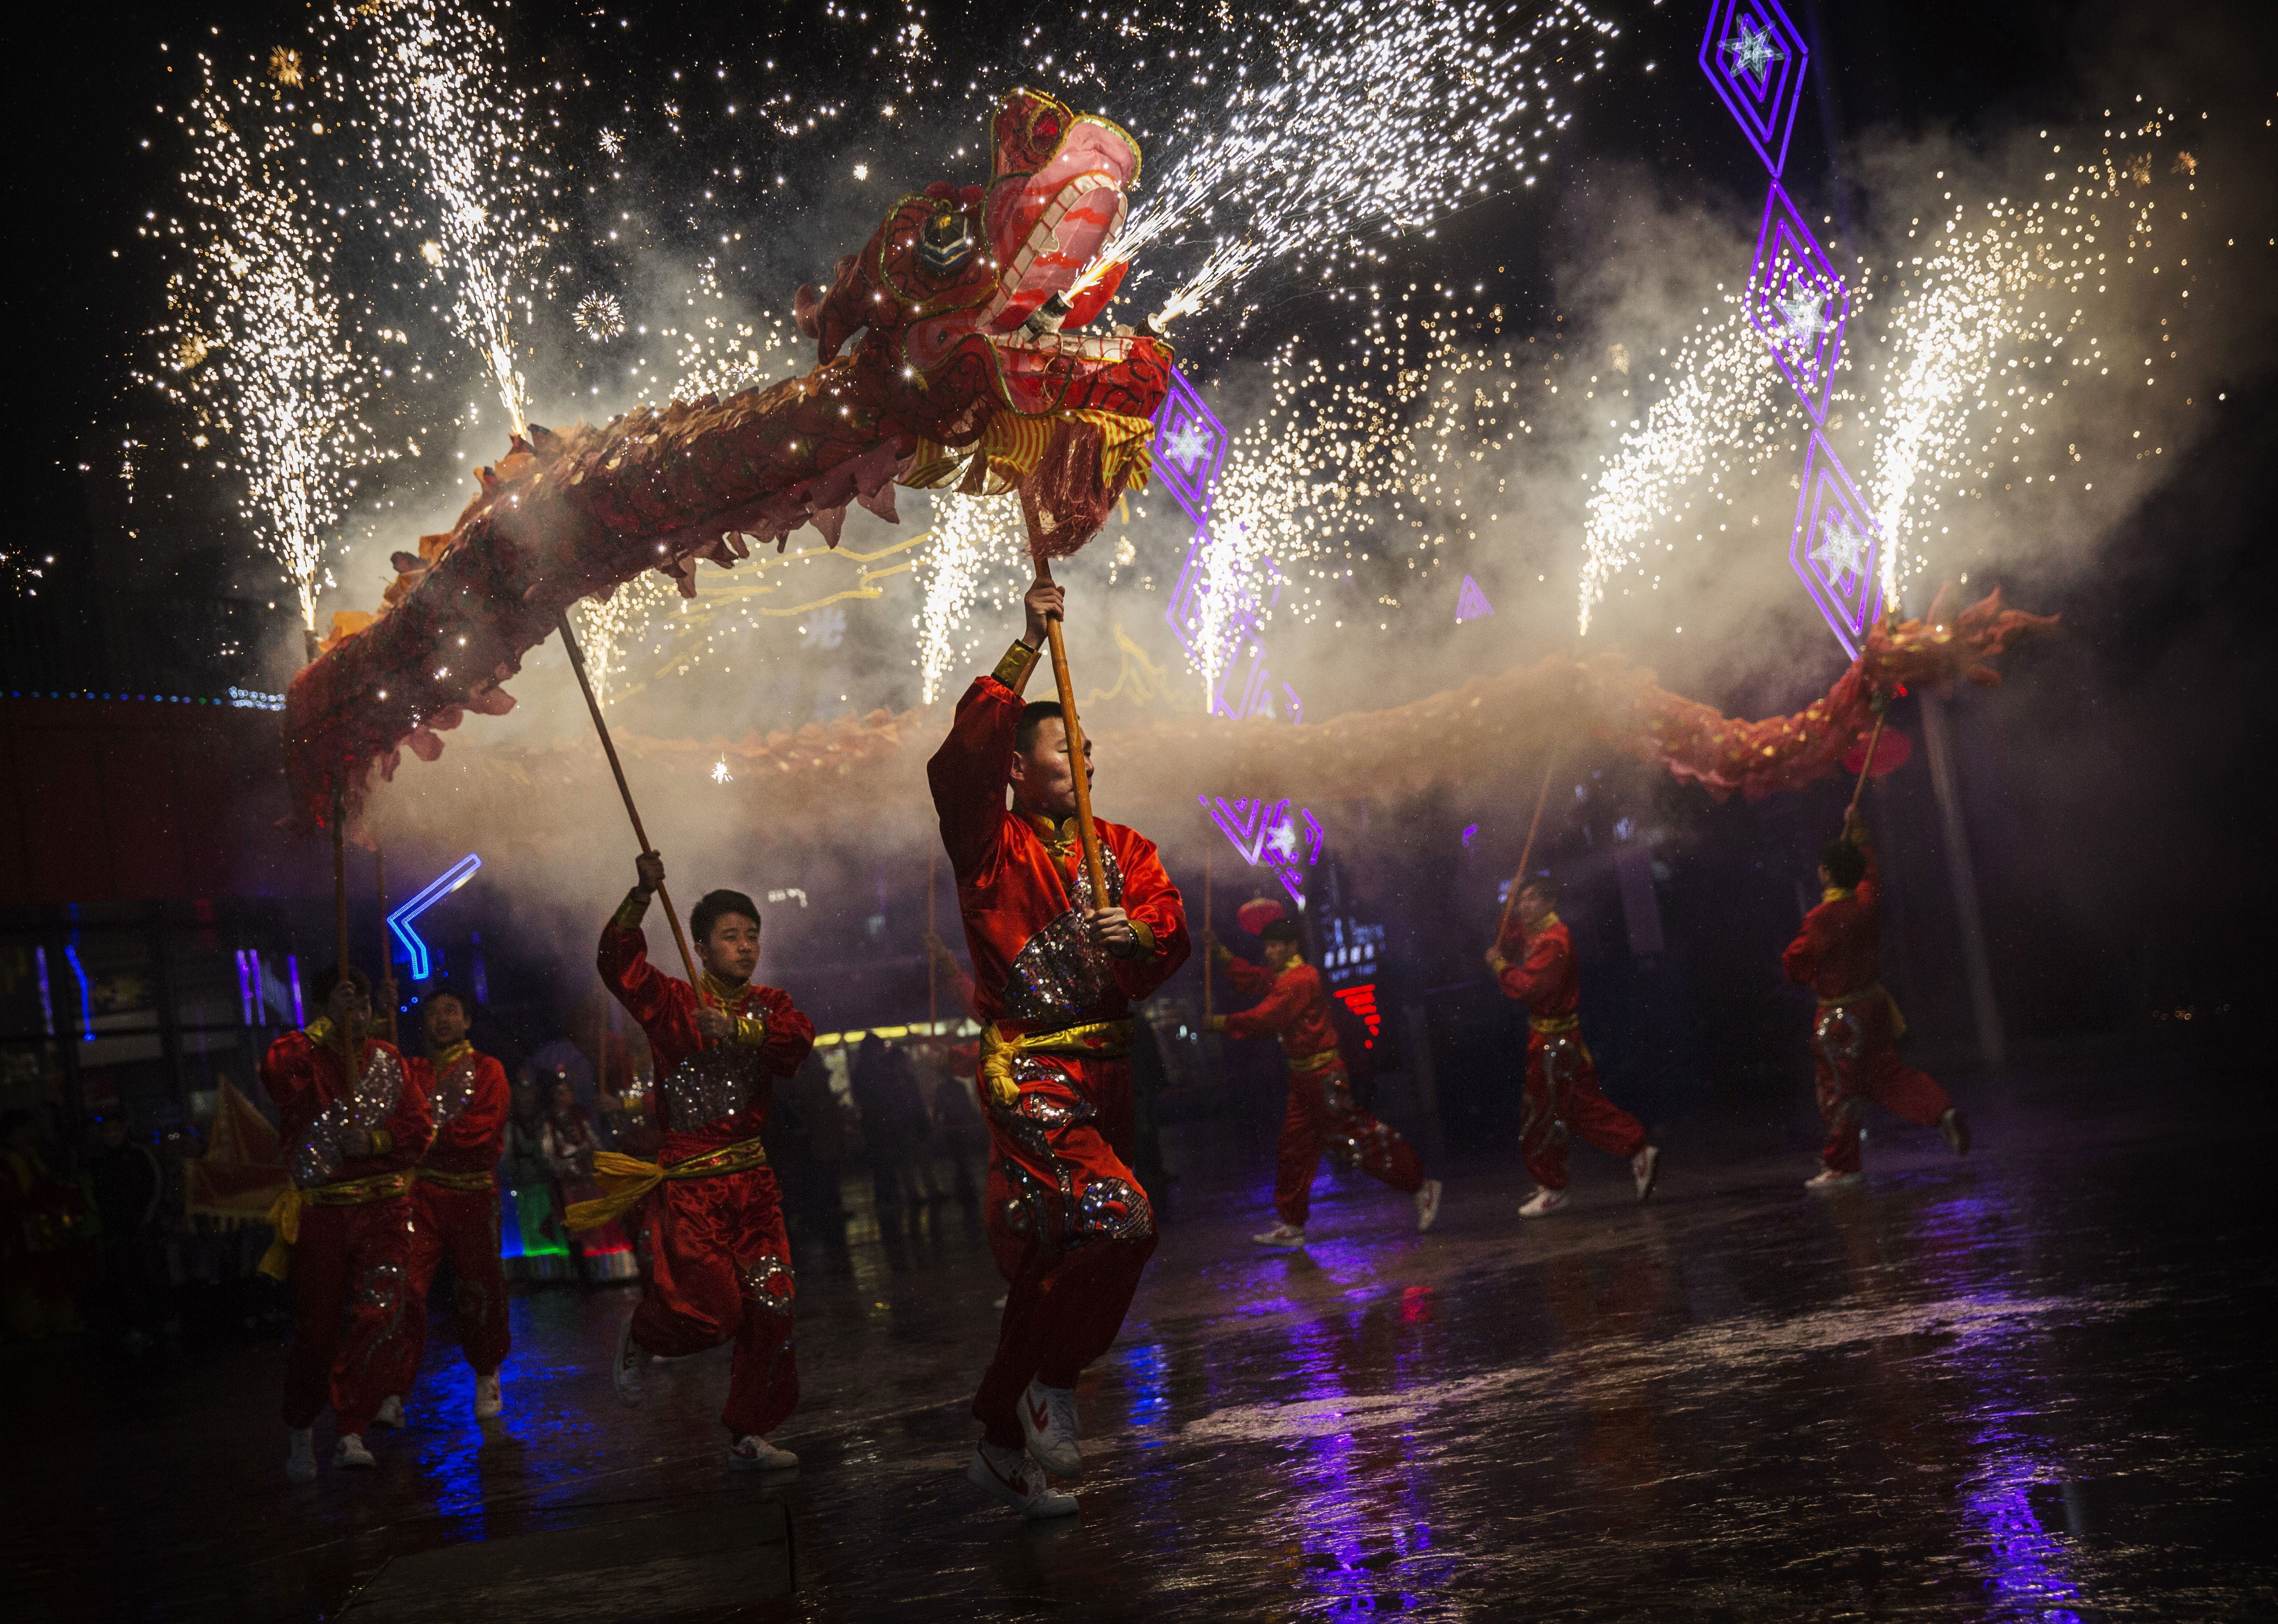 Say happy new year in chinese dancers perform a dragon dance during the chinese new year kristyandbryce Image collections